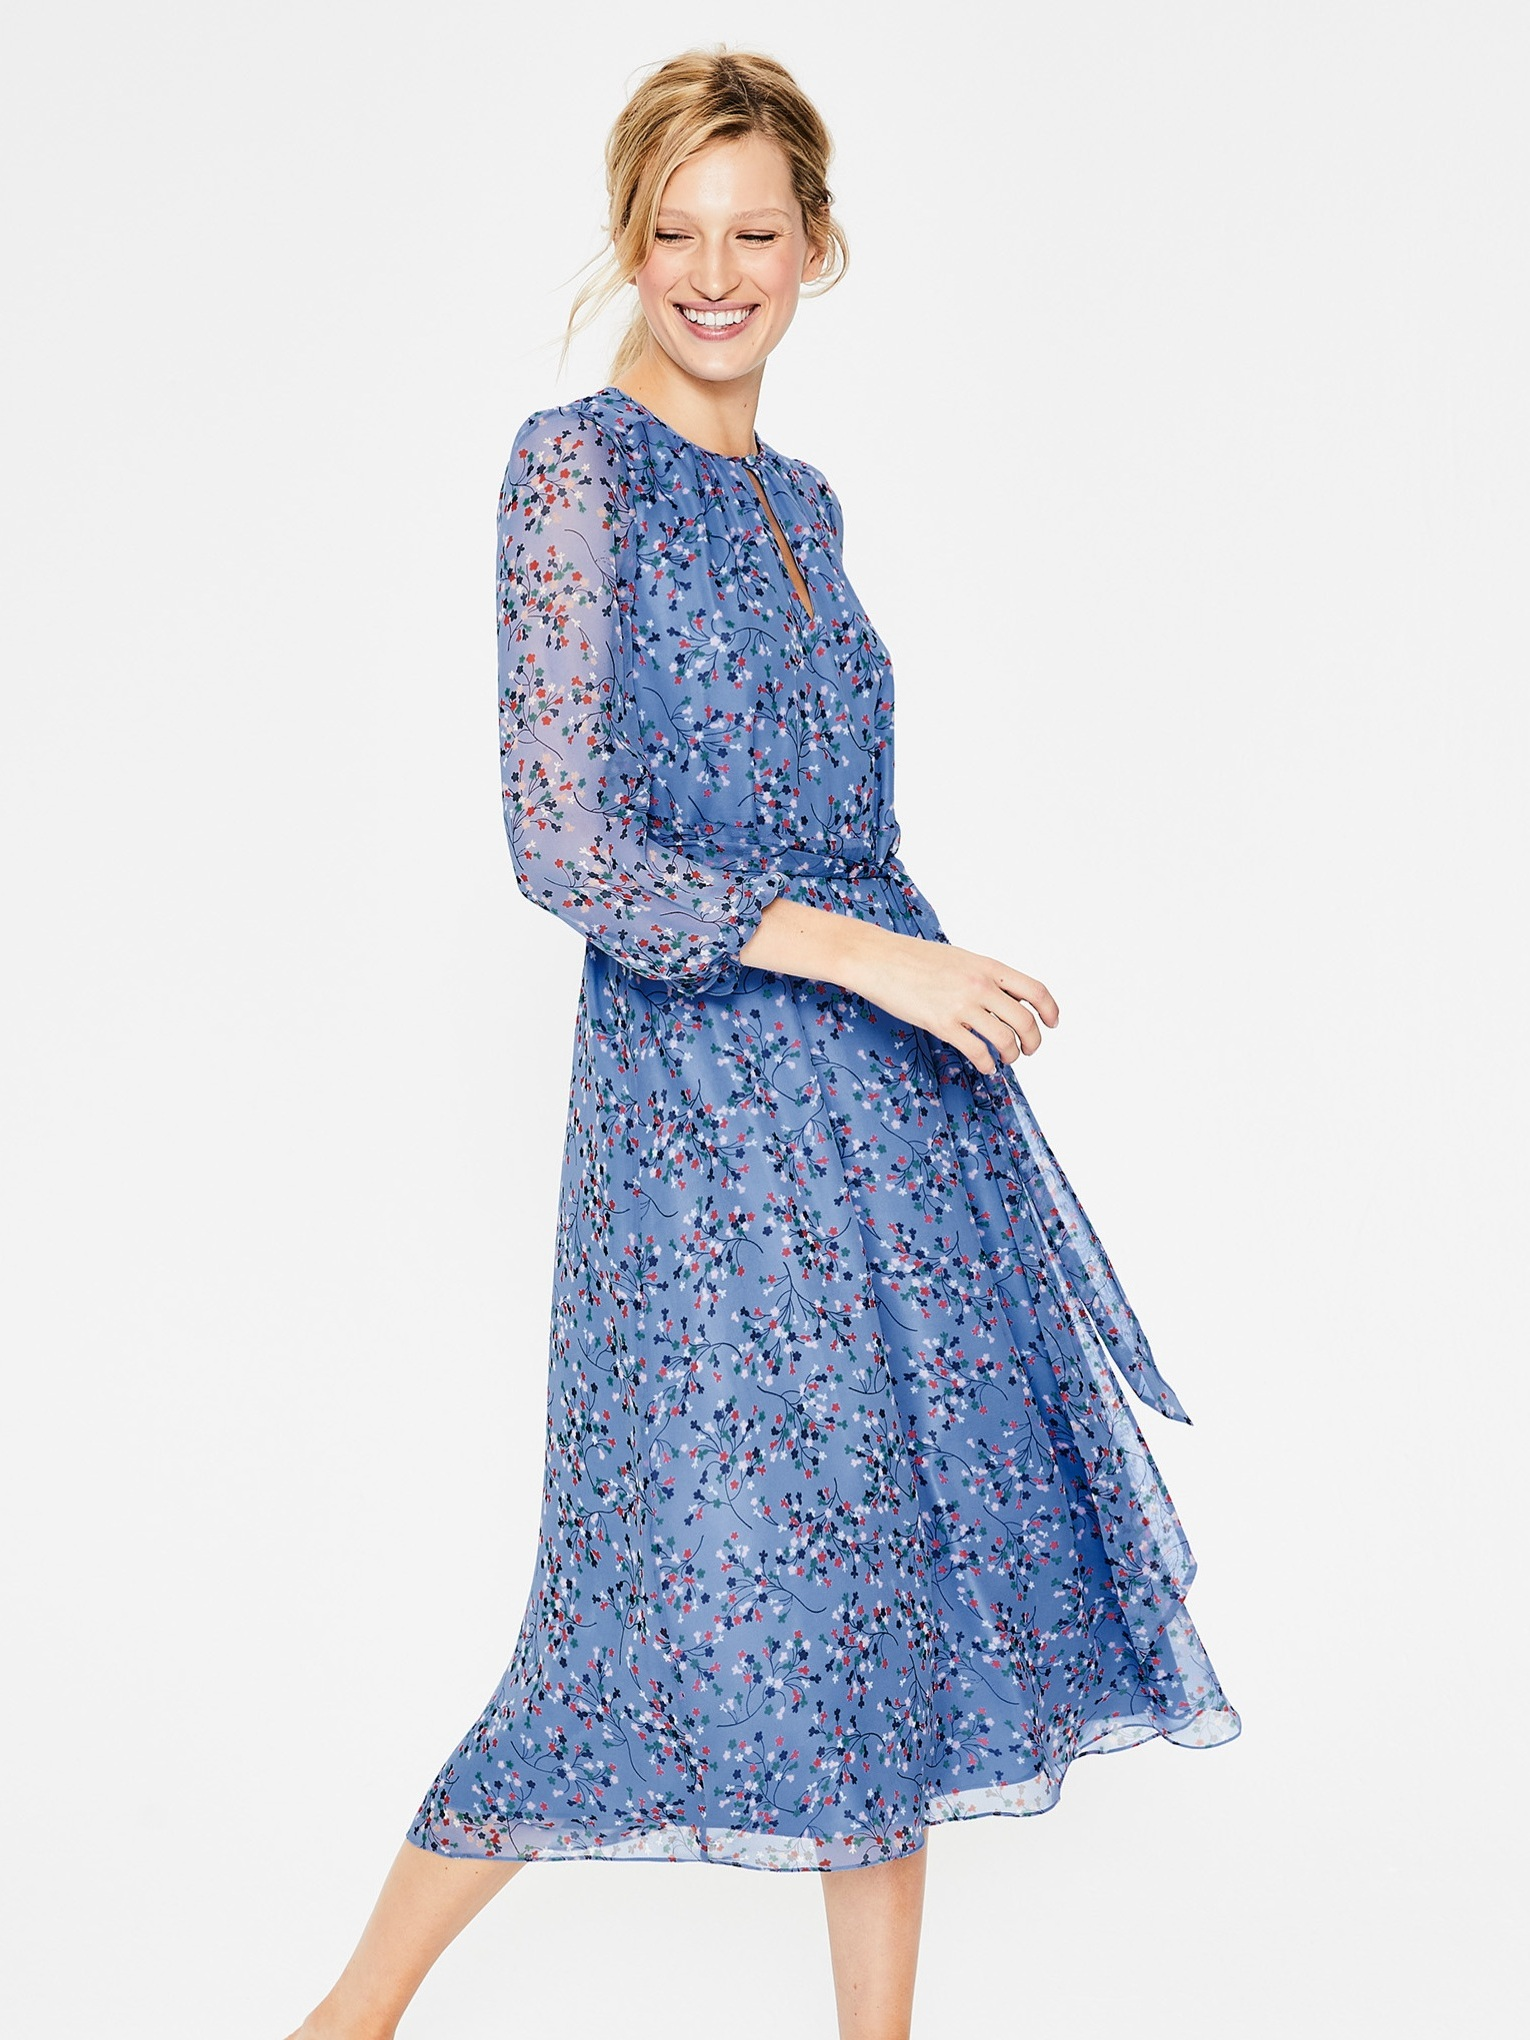 Victorian-Inspired Ethical Fashion | Kyra Silk Dress - Boden